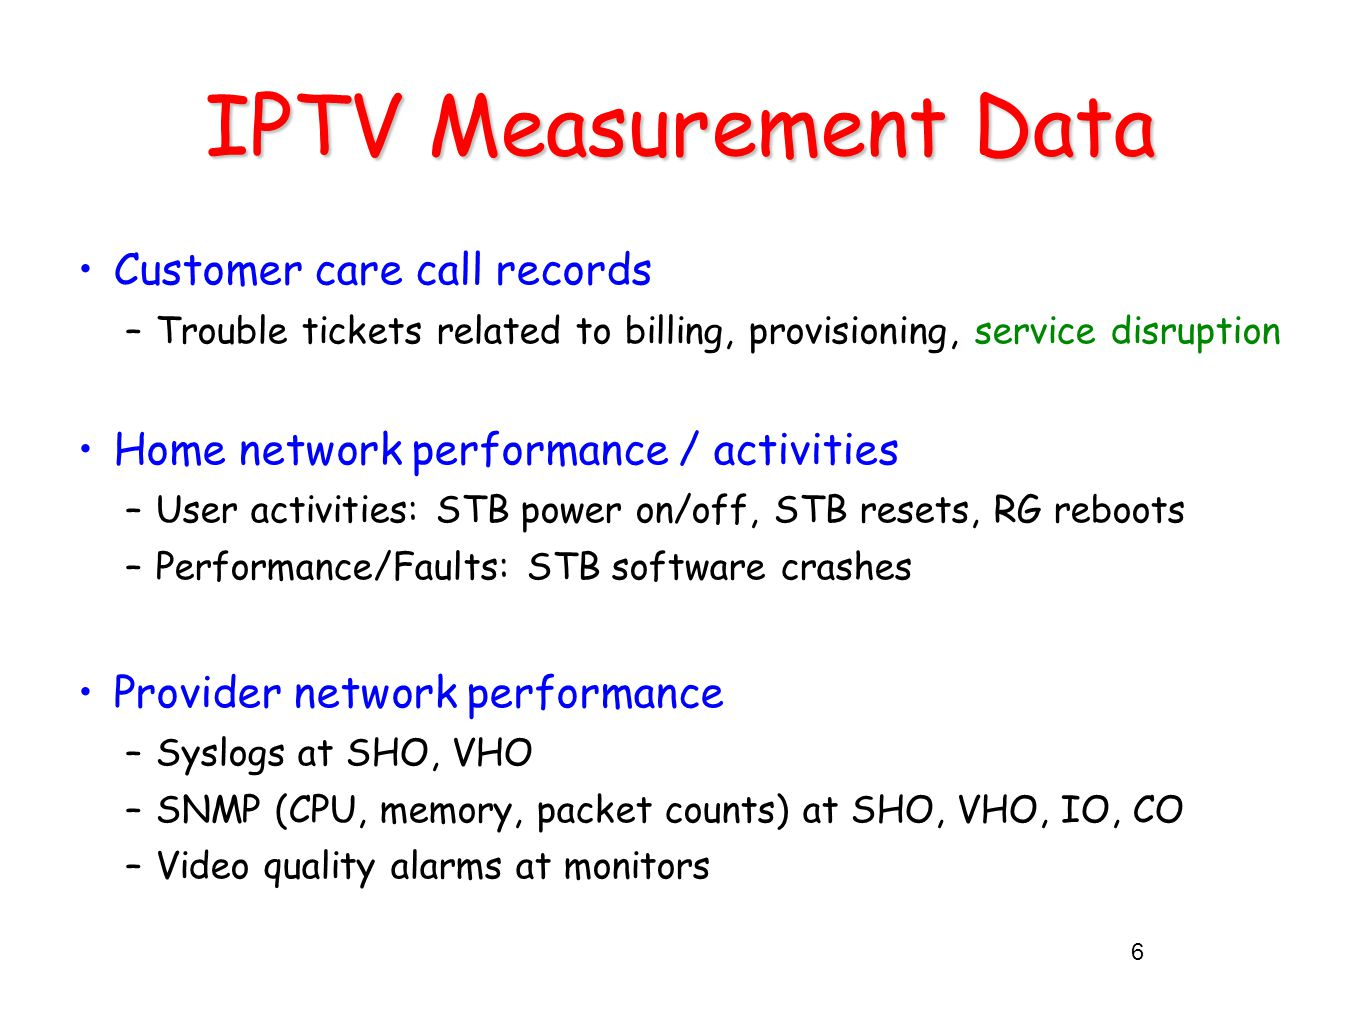 IPTV Measurement Data Customer care call records –Trouble tickets related to billing, provisioning, service disruption Home network performance / activities –User activities: STB power on/off, STB resets, RG reboots –Performance/Faults: STB software crashes Provider network performance –Syslogs at SHO, VHO –SNMP (CPU, memory, packet counts) at SHO, VHO, IO, CO –Video quality alarms at monitors 6